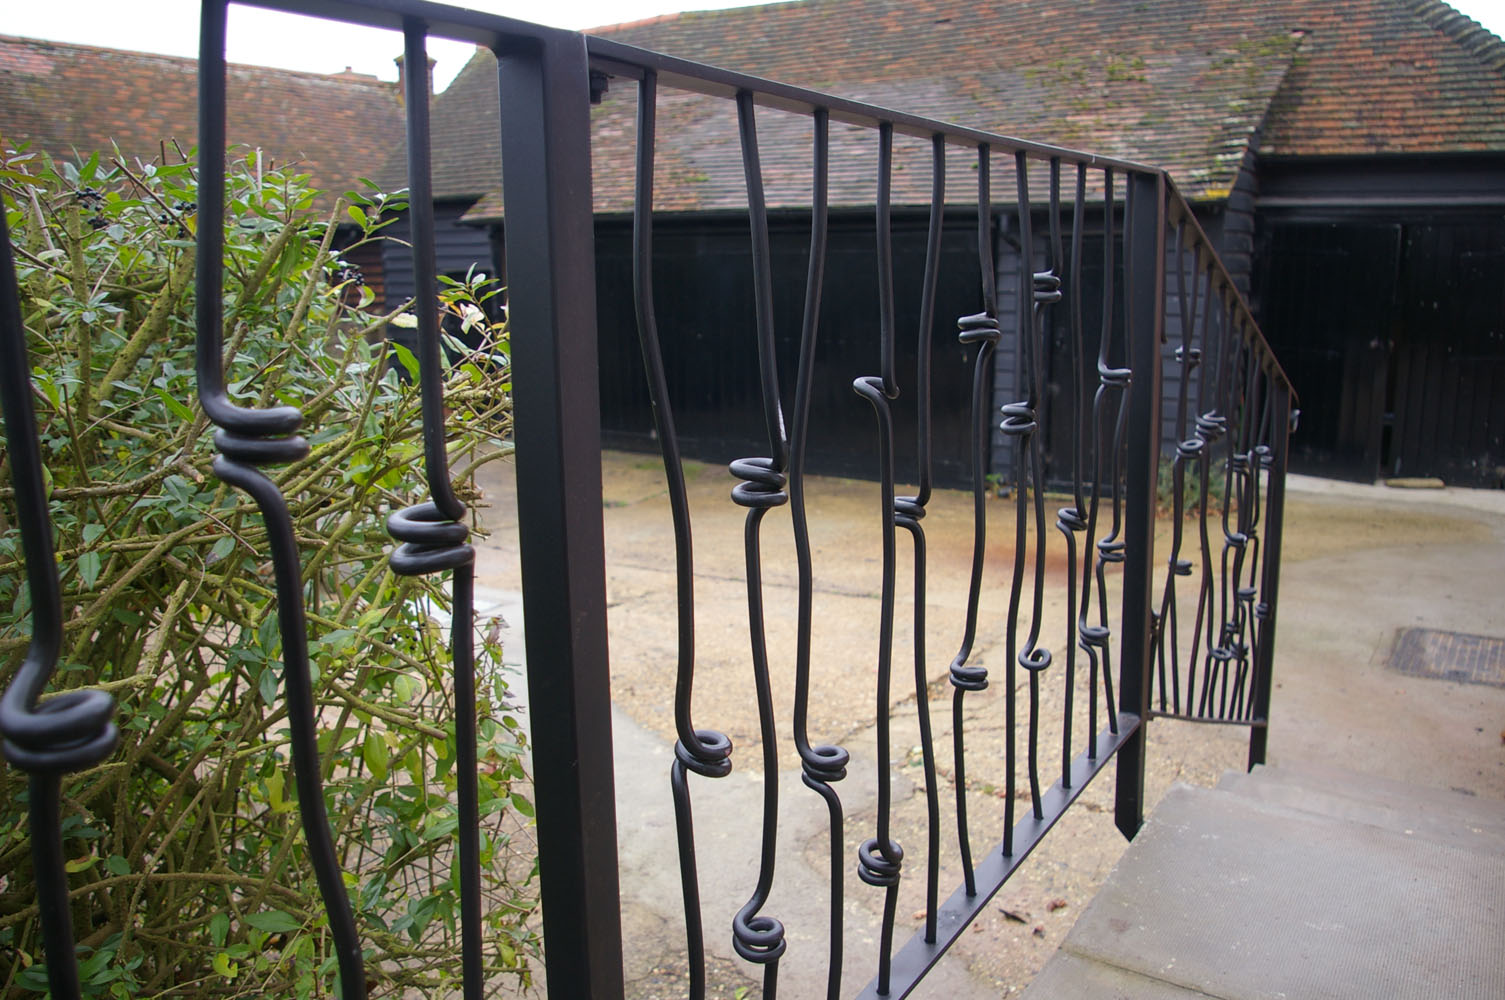 \'Knotted bar\' railing detail